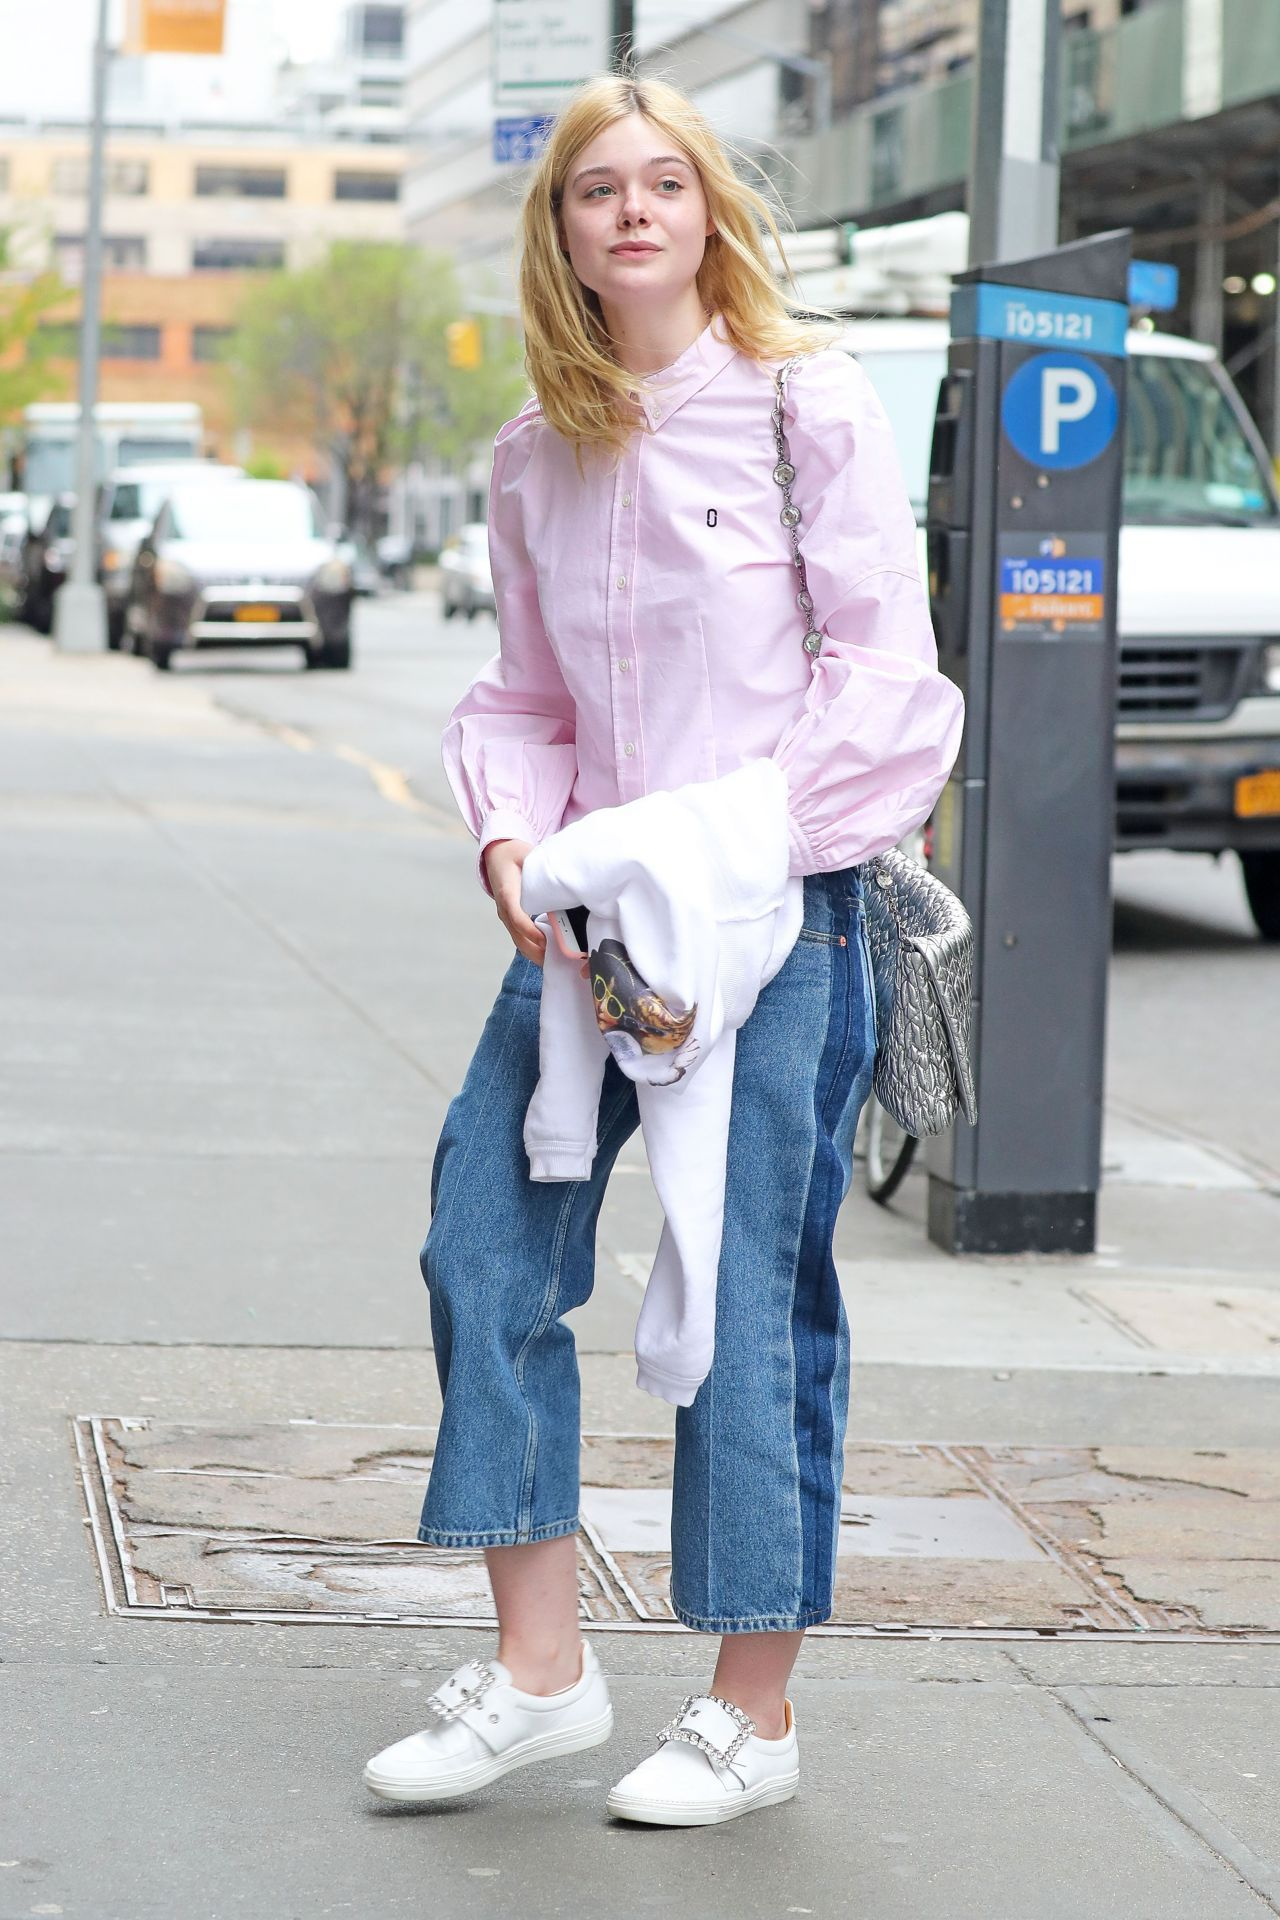 d6e8bd6a7e Soho, Skinny, Dakota And Elle Fanning, Fanning Sisters, Duster Coat, Looks